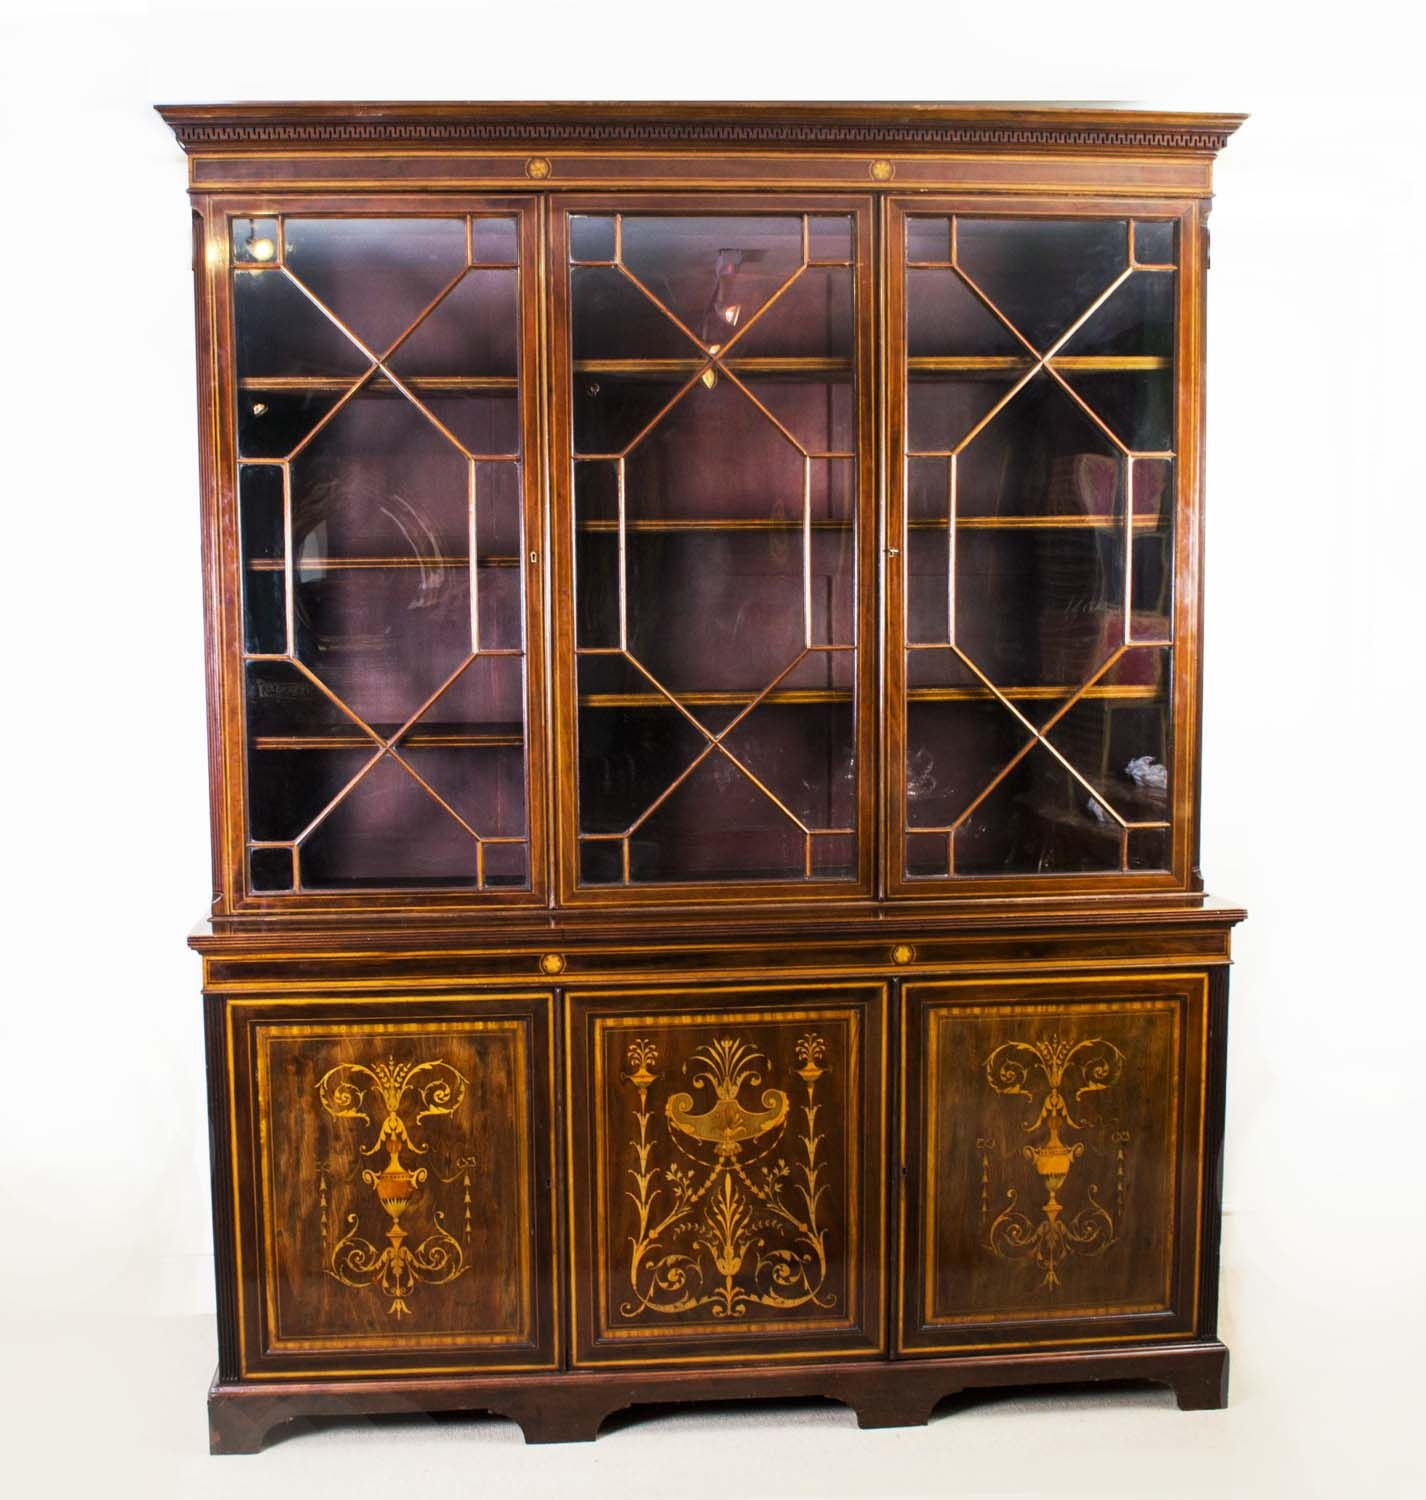 An antique Edwardian mahogany bookcase by Shoolbred